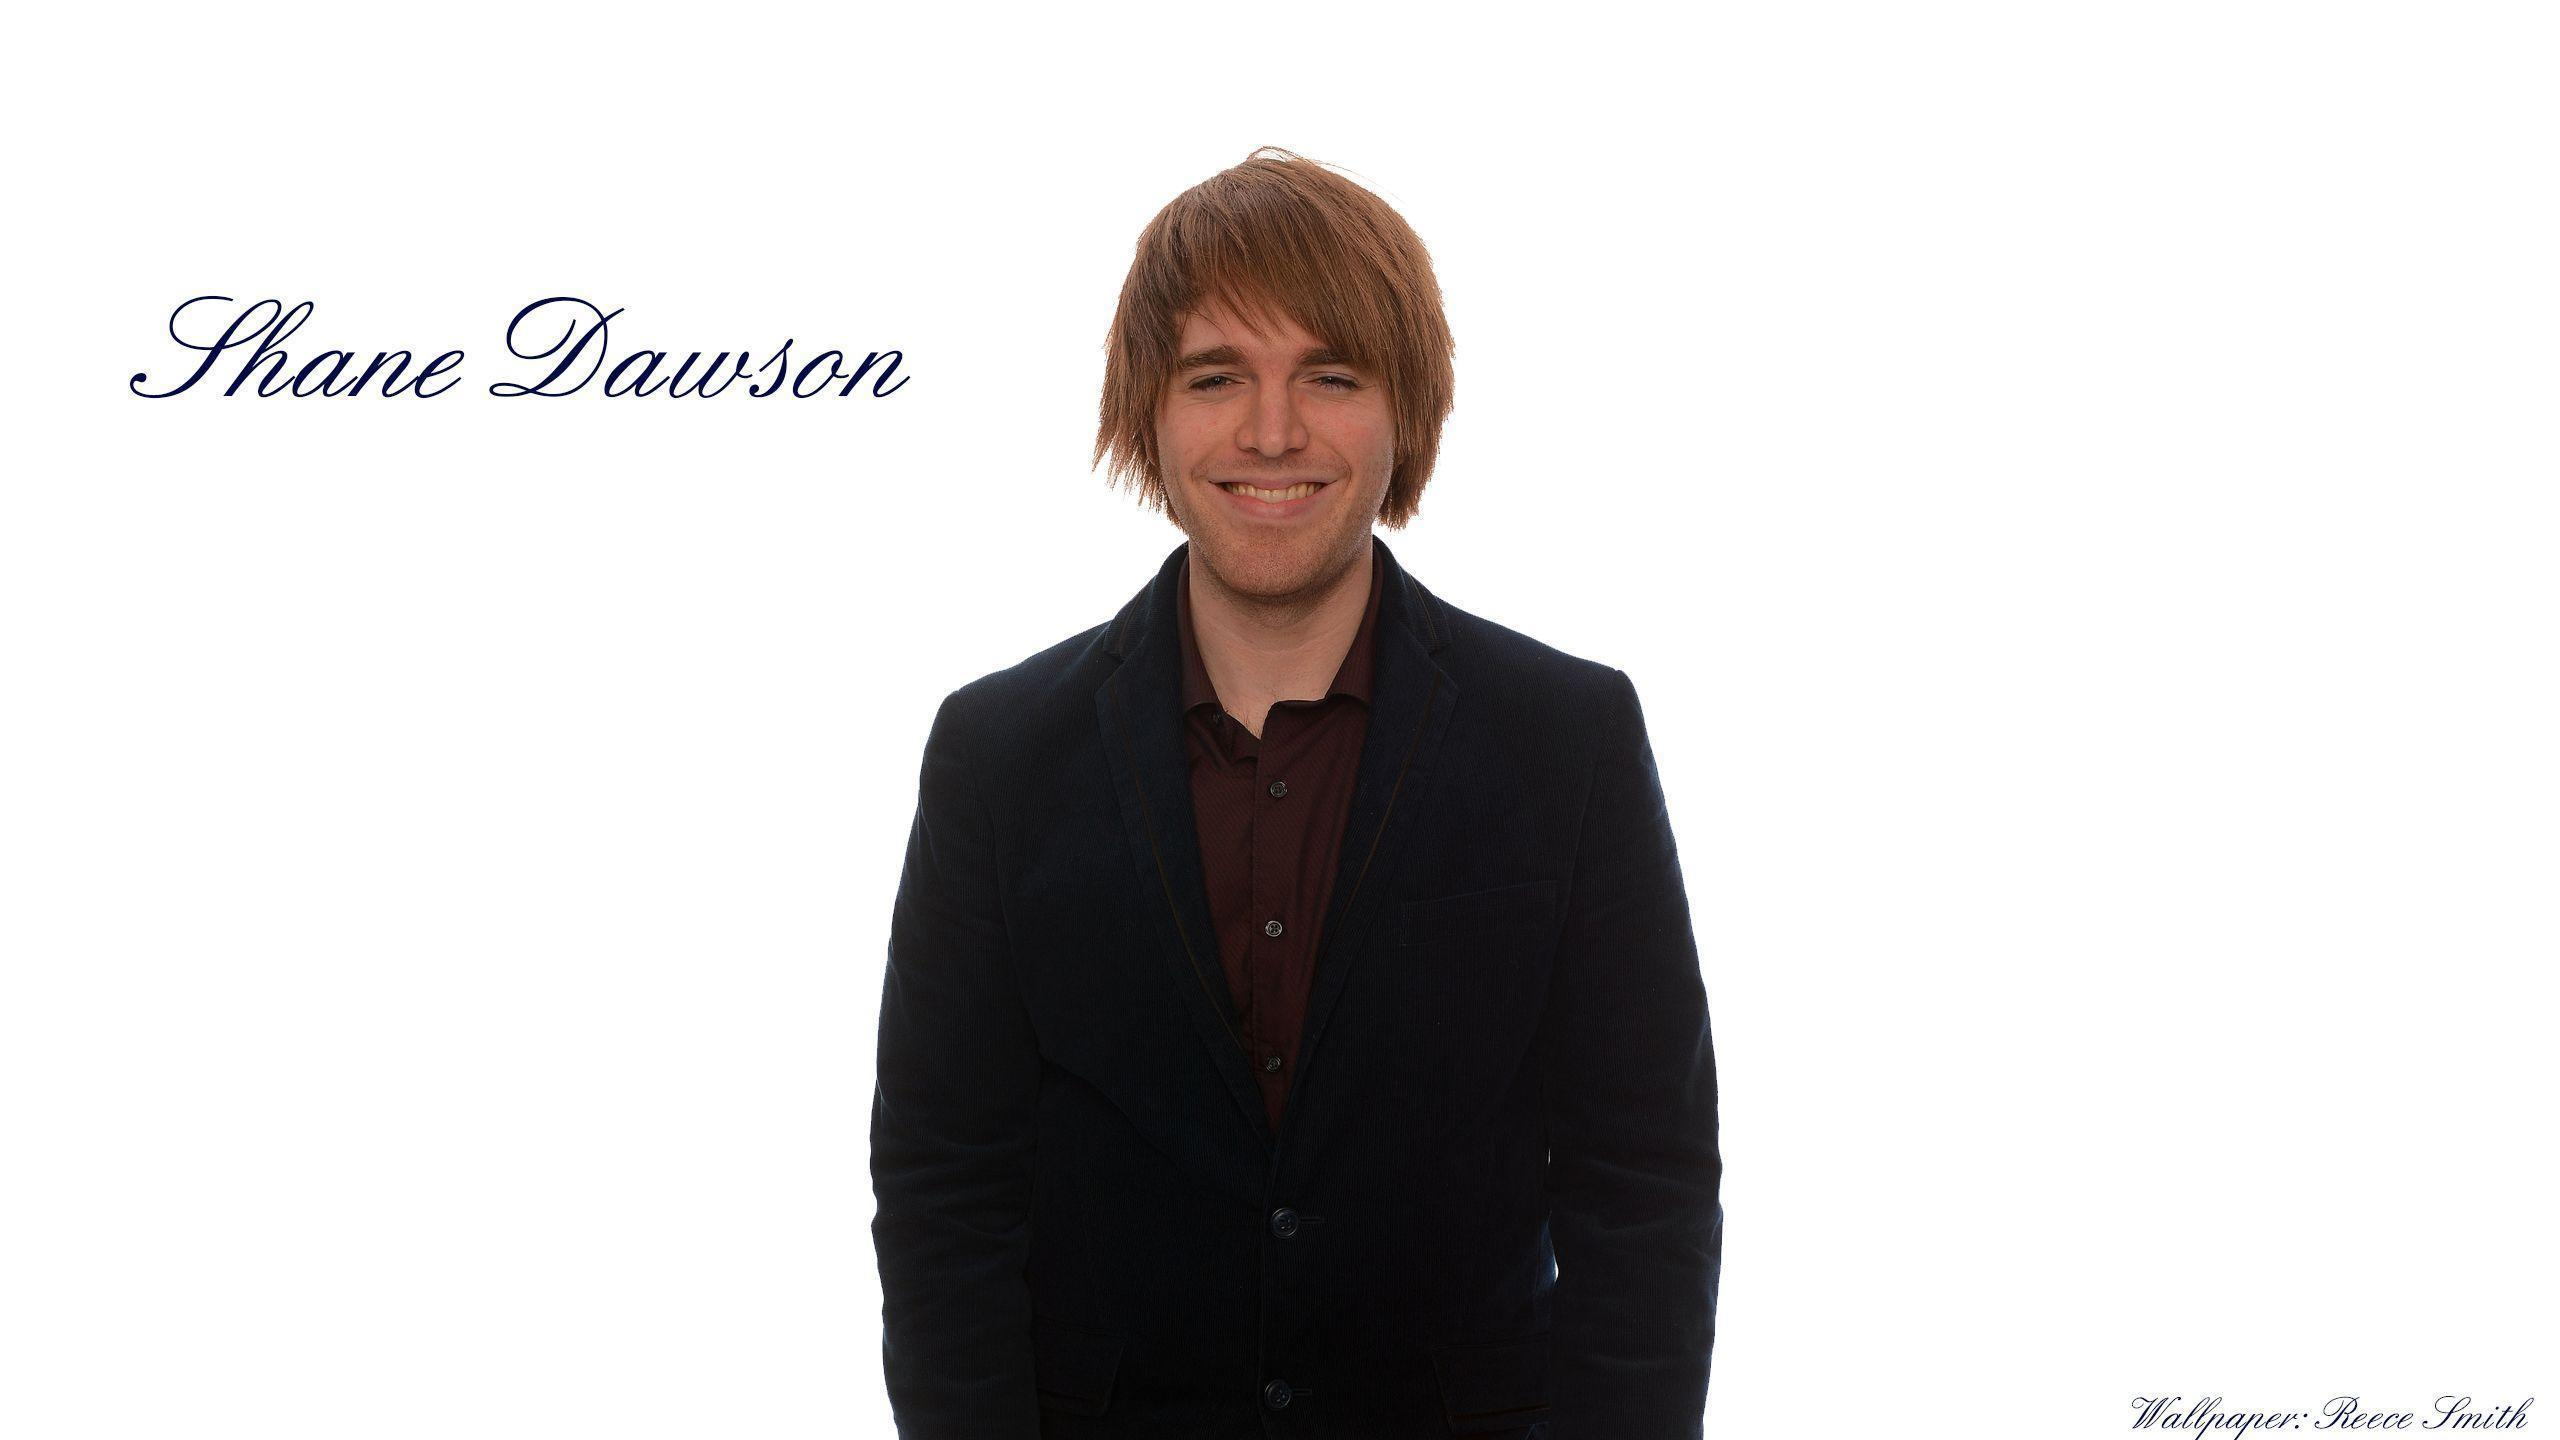 Shane Dawson Wallpapers - WallpaperPulse